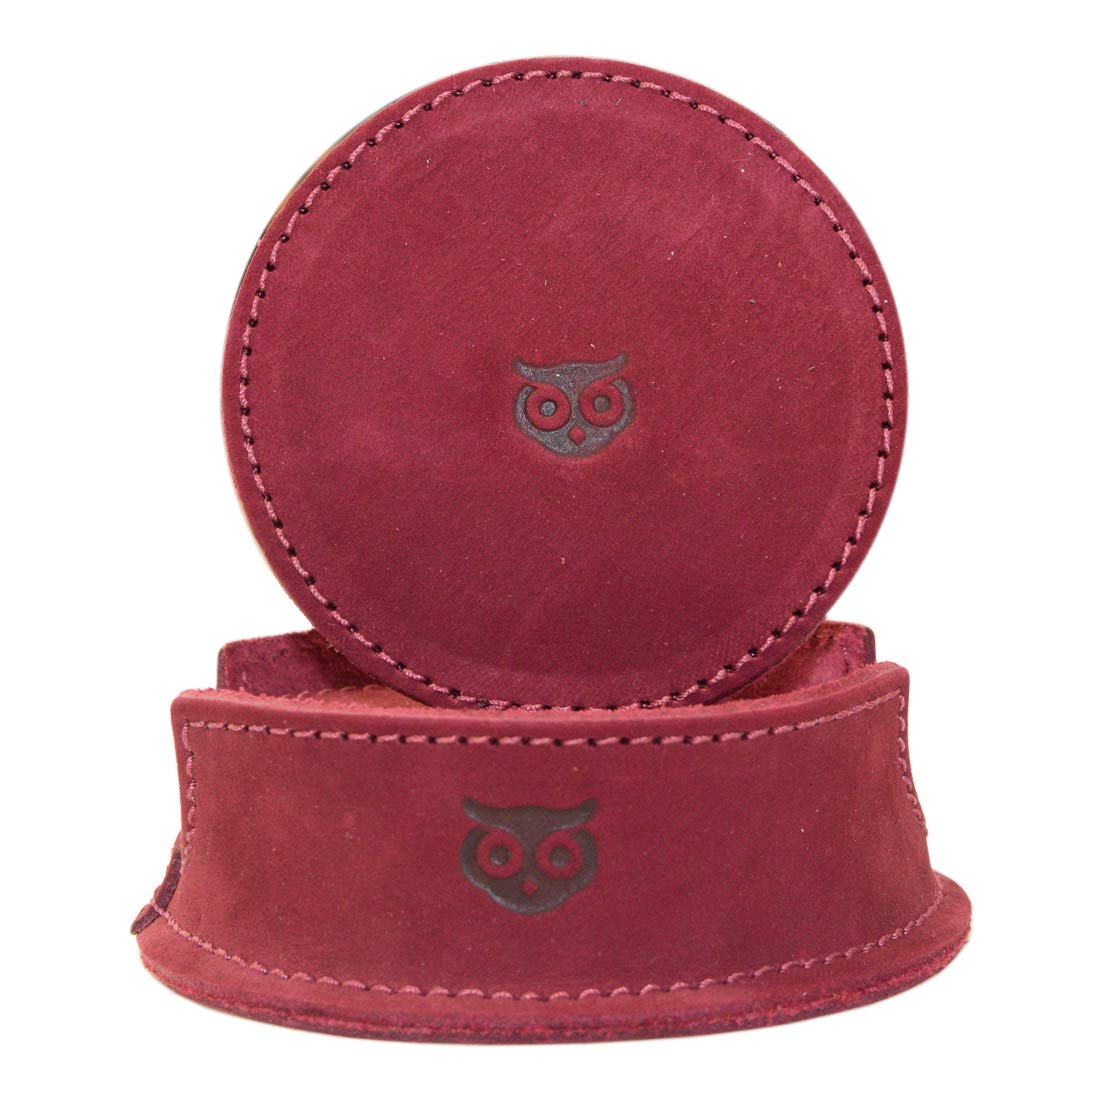 Hide & Drink, Durable Thick Leather Owl Coasters with Stitching (6-Pack) Handmade Includes 101 Year Warranty :: Red Velvet Suede by Hide & Drink